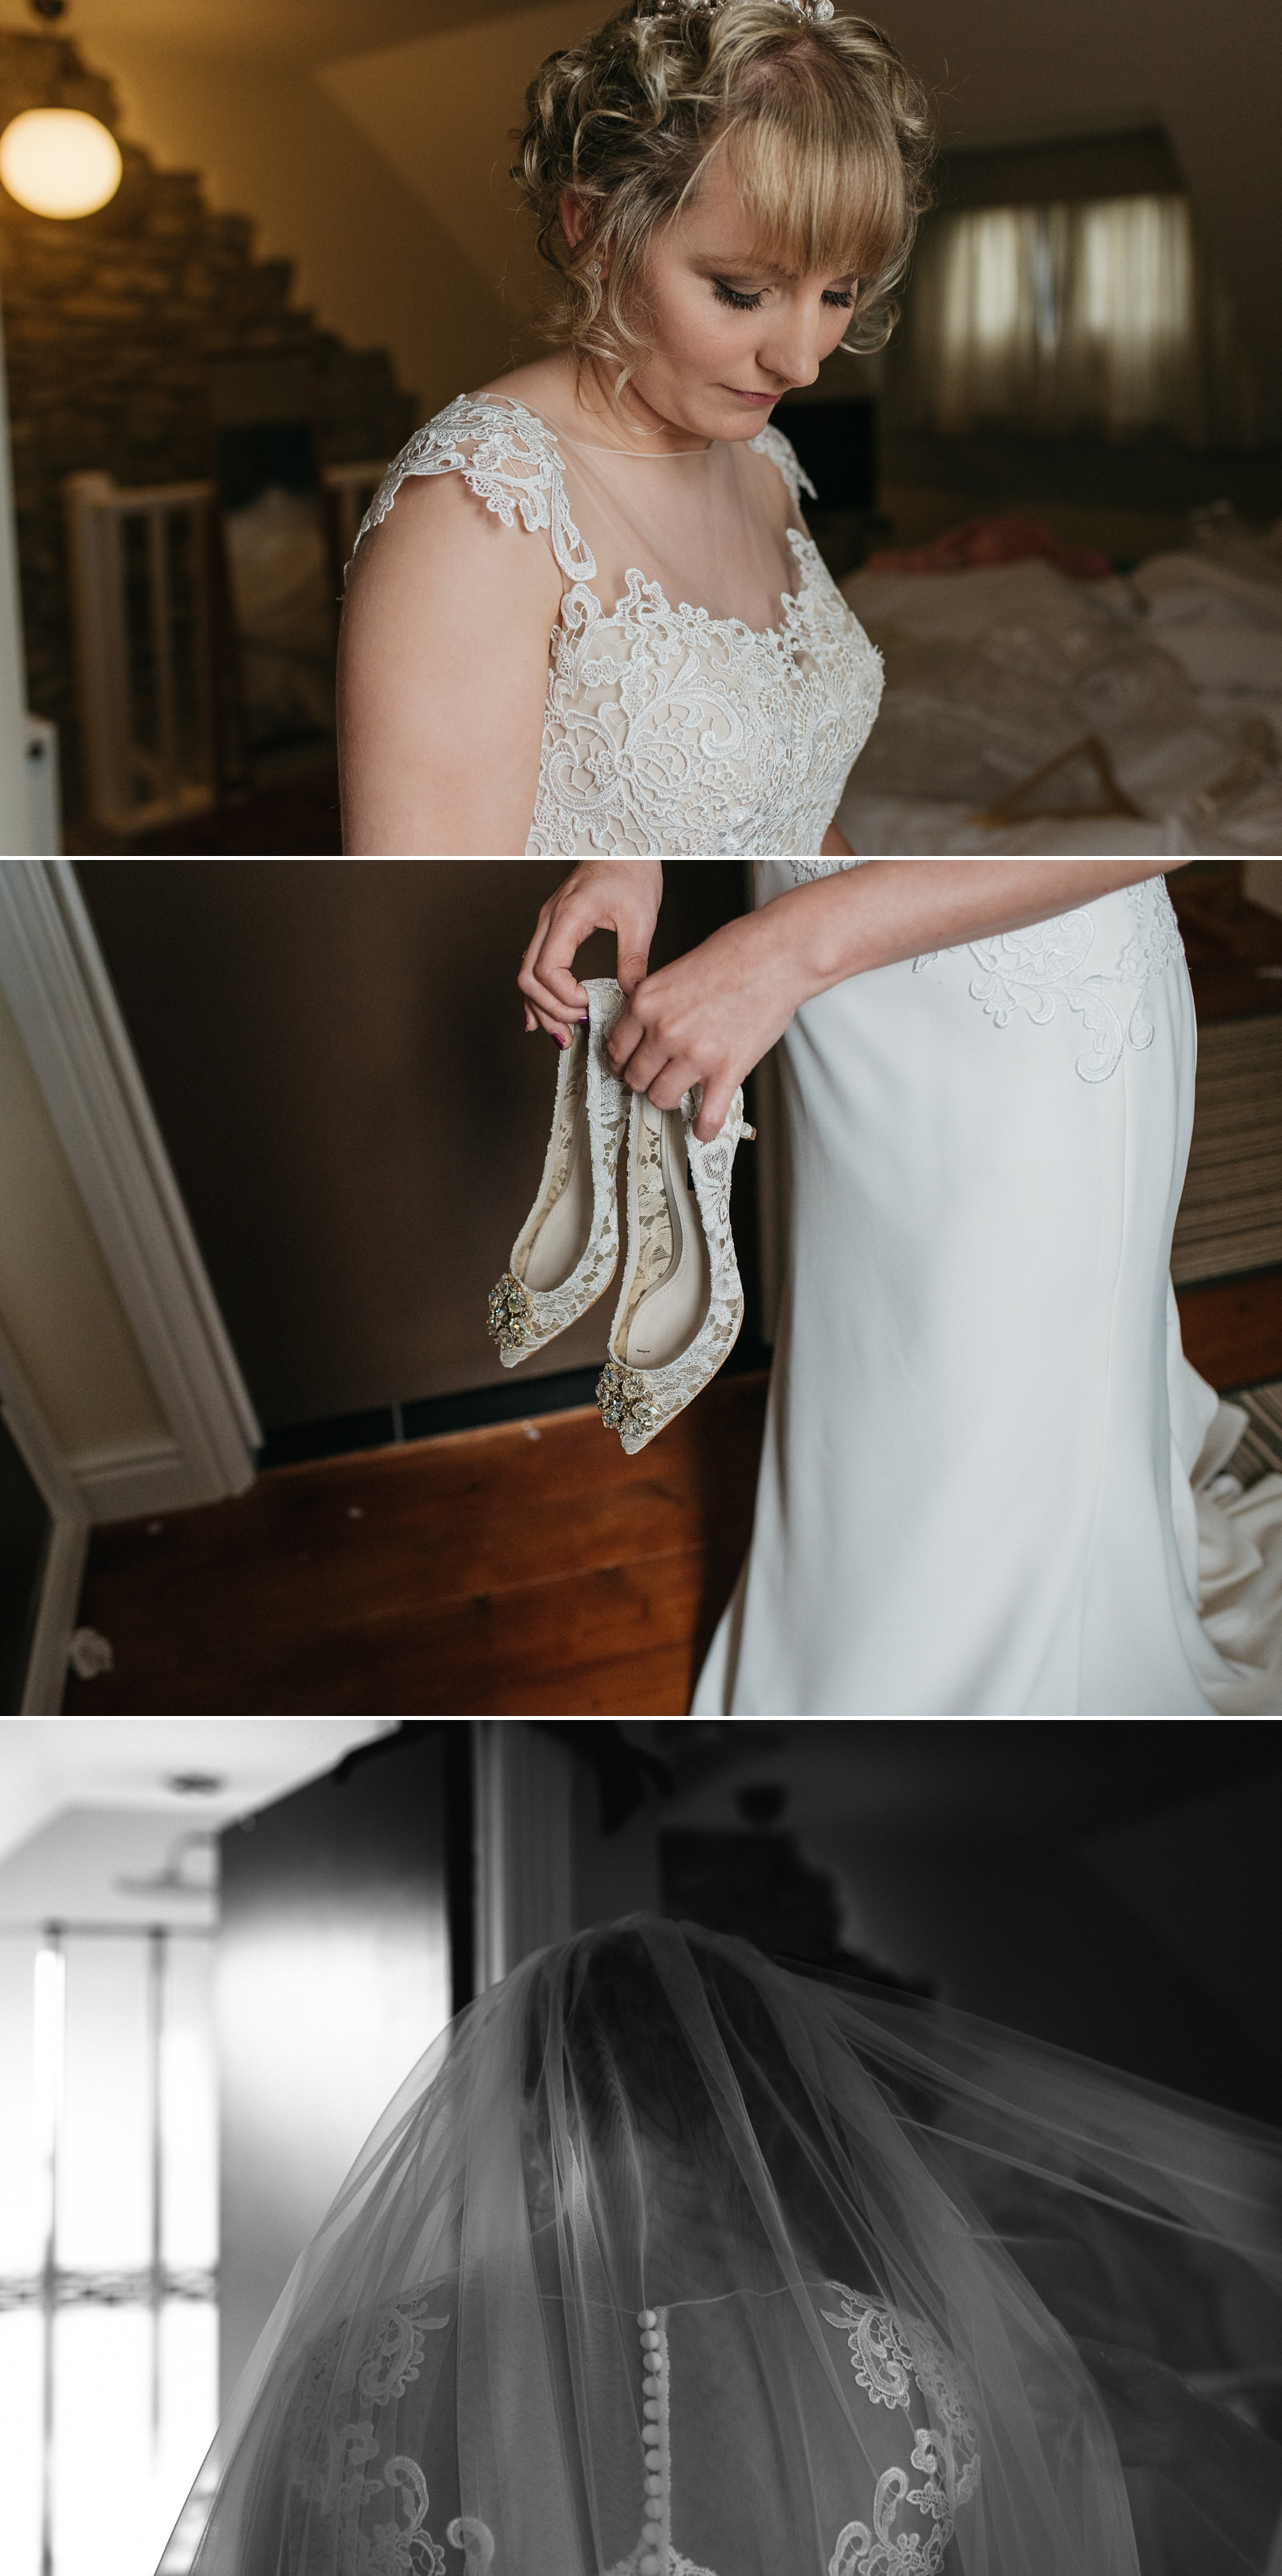 creative bridal portraits during bridal preparation